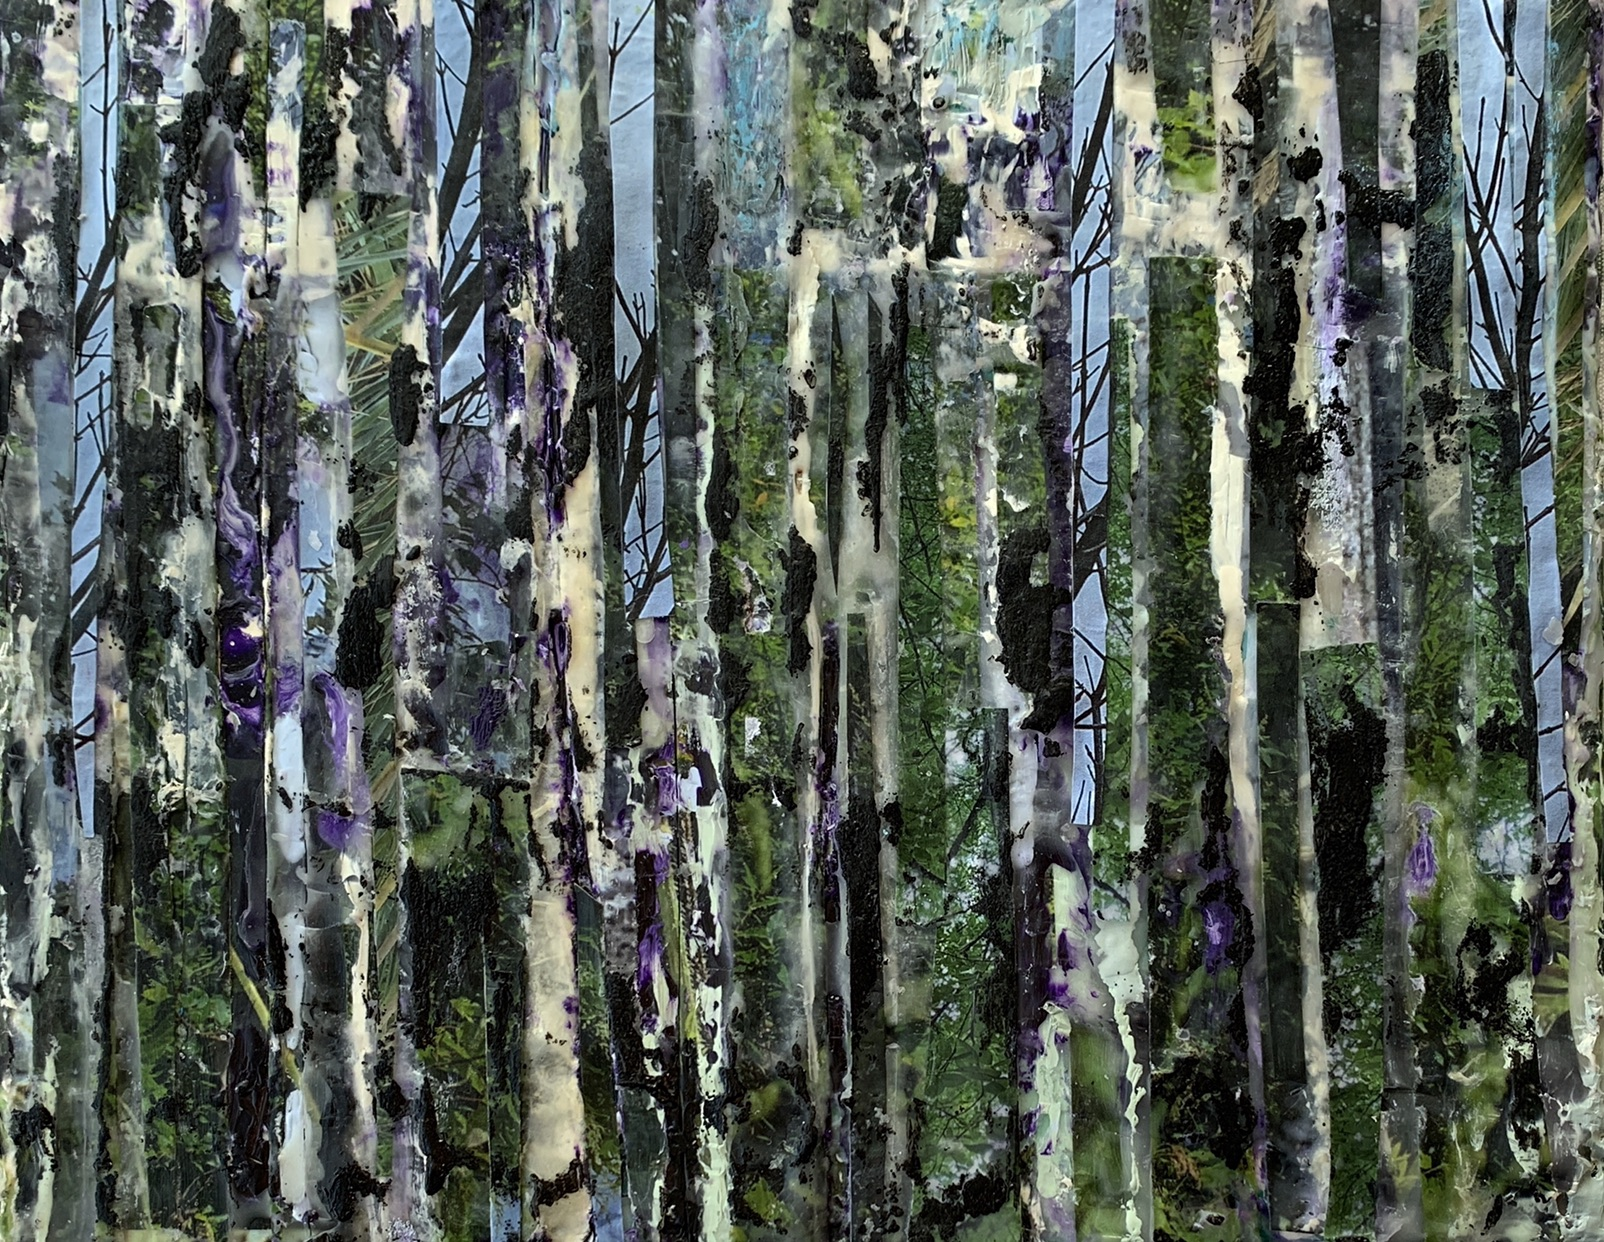 Williams_Birch Bliss_10 inches x 8 inches Encaustic with Mixed Media